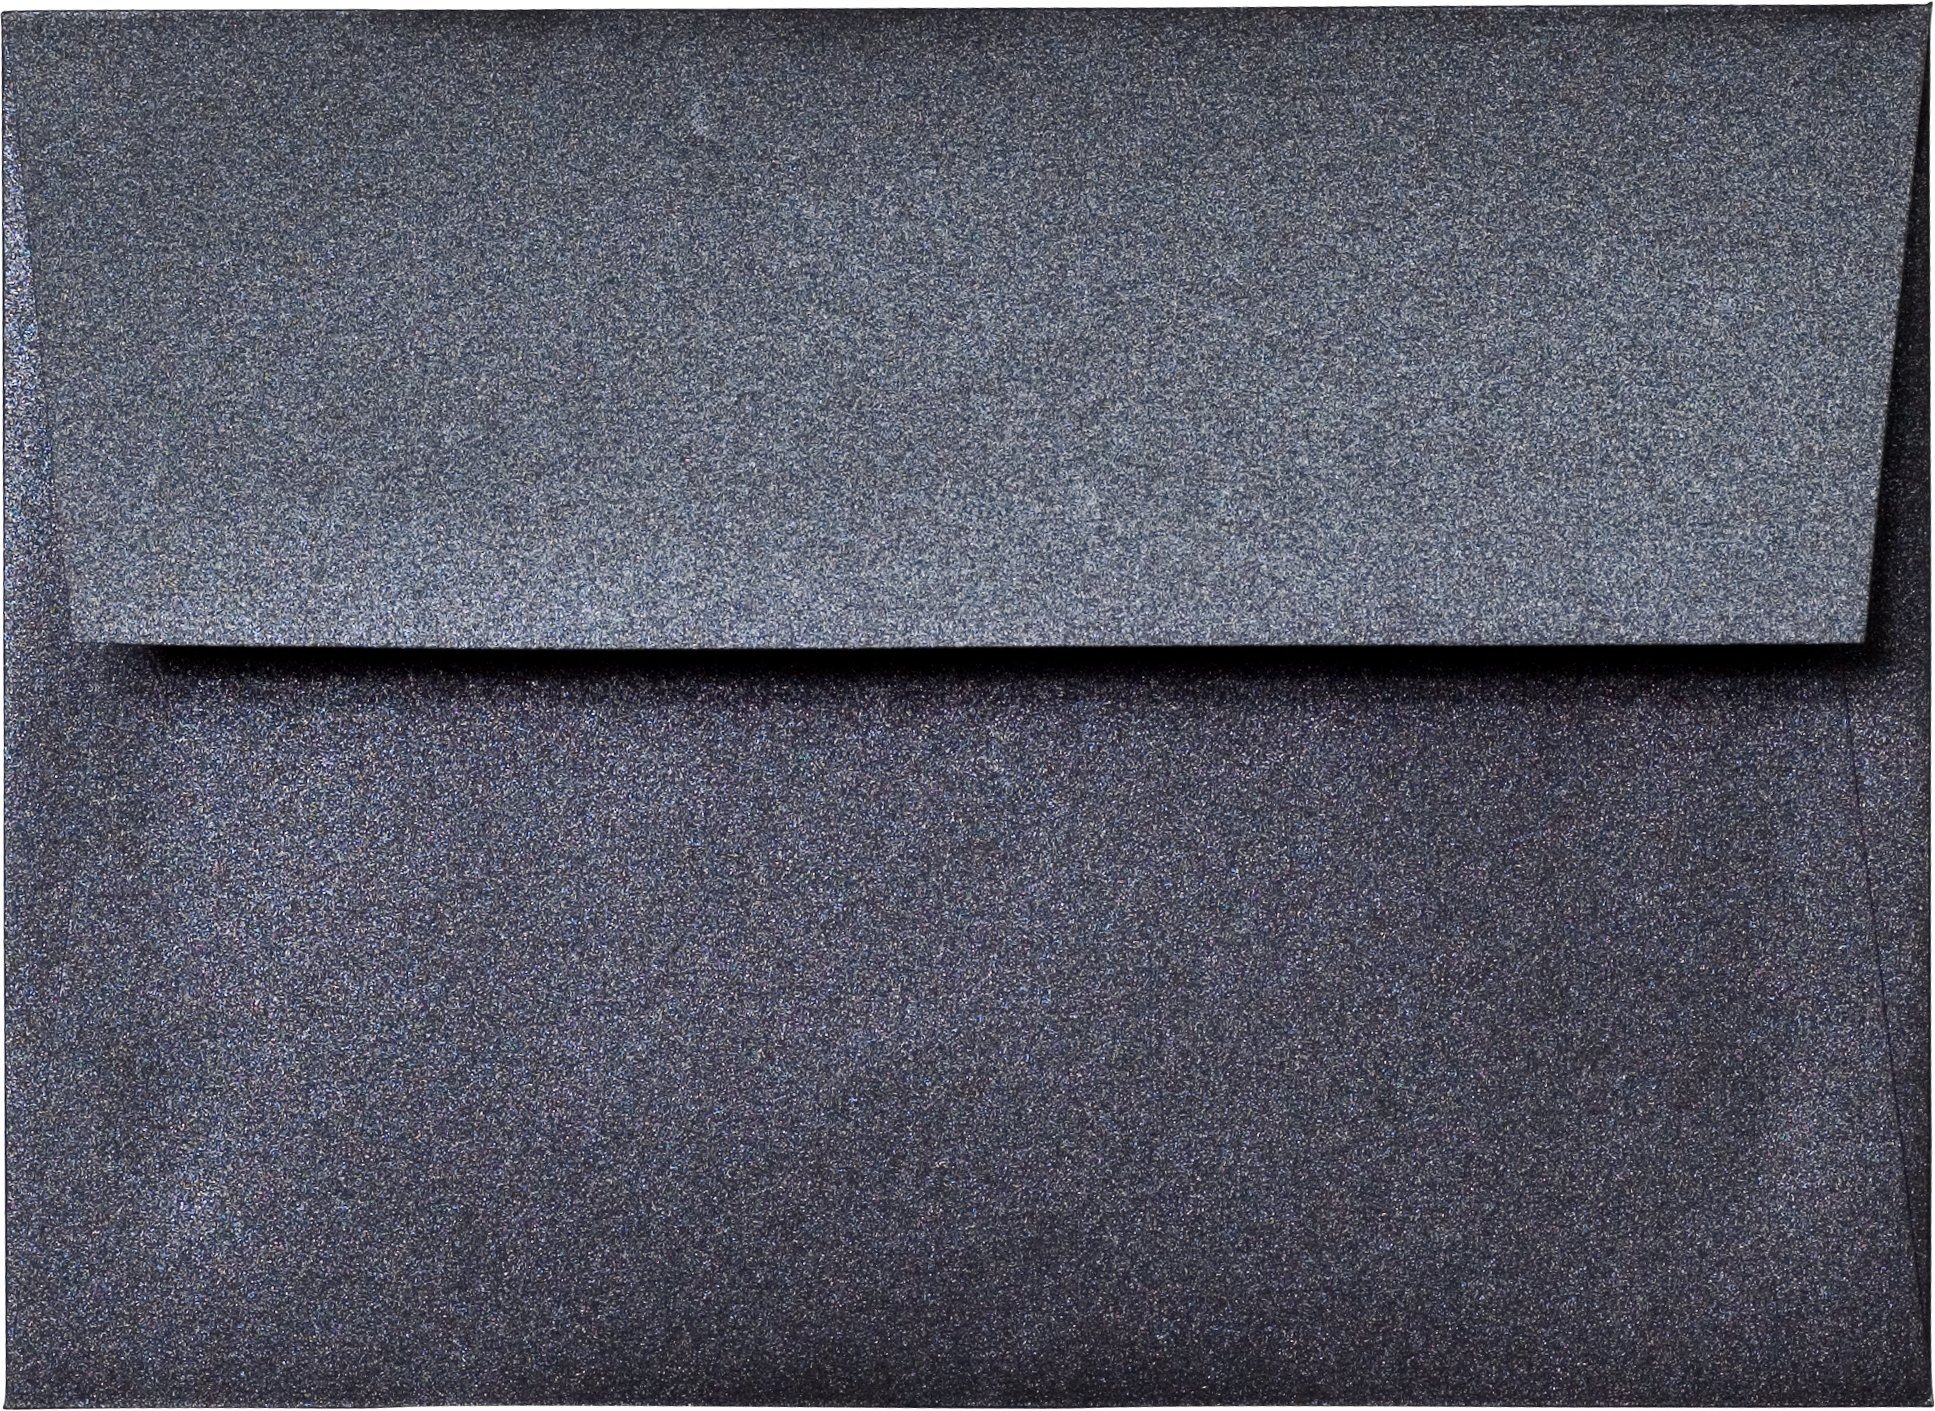 A-7 Envelope - Onyx Black Shimmery Metallic Envelope (5.25 x 7.25) - 50 Envelopes from Paper and More